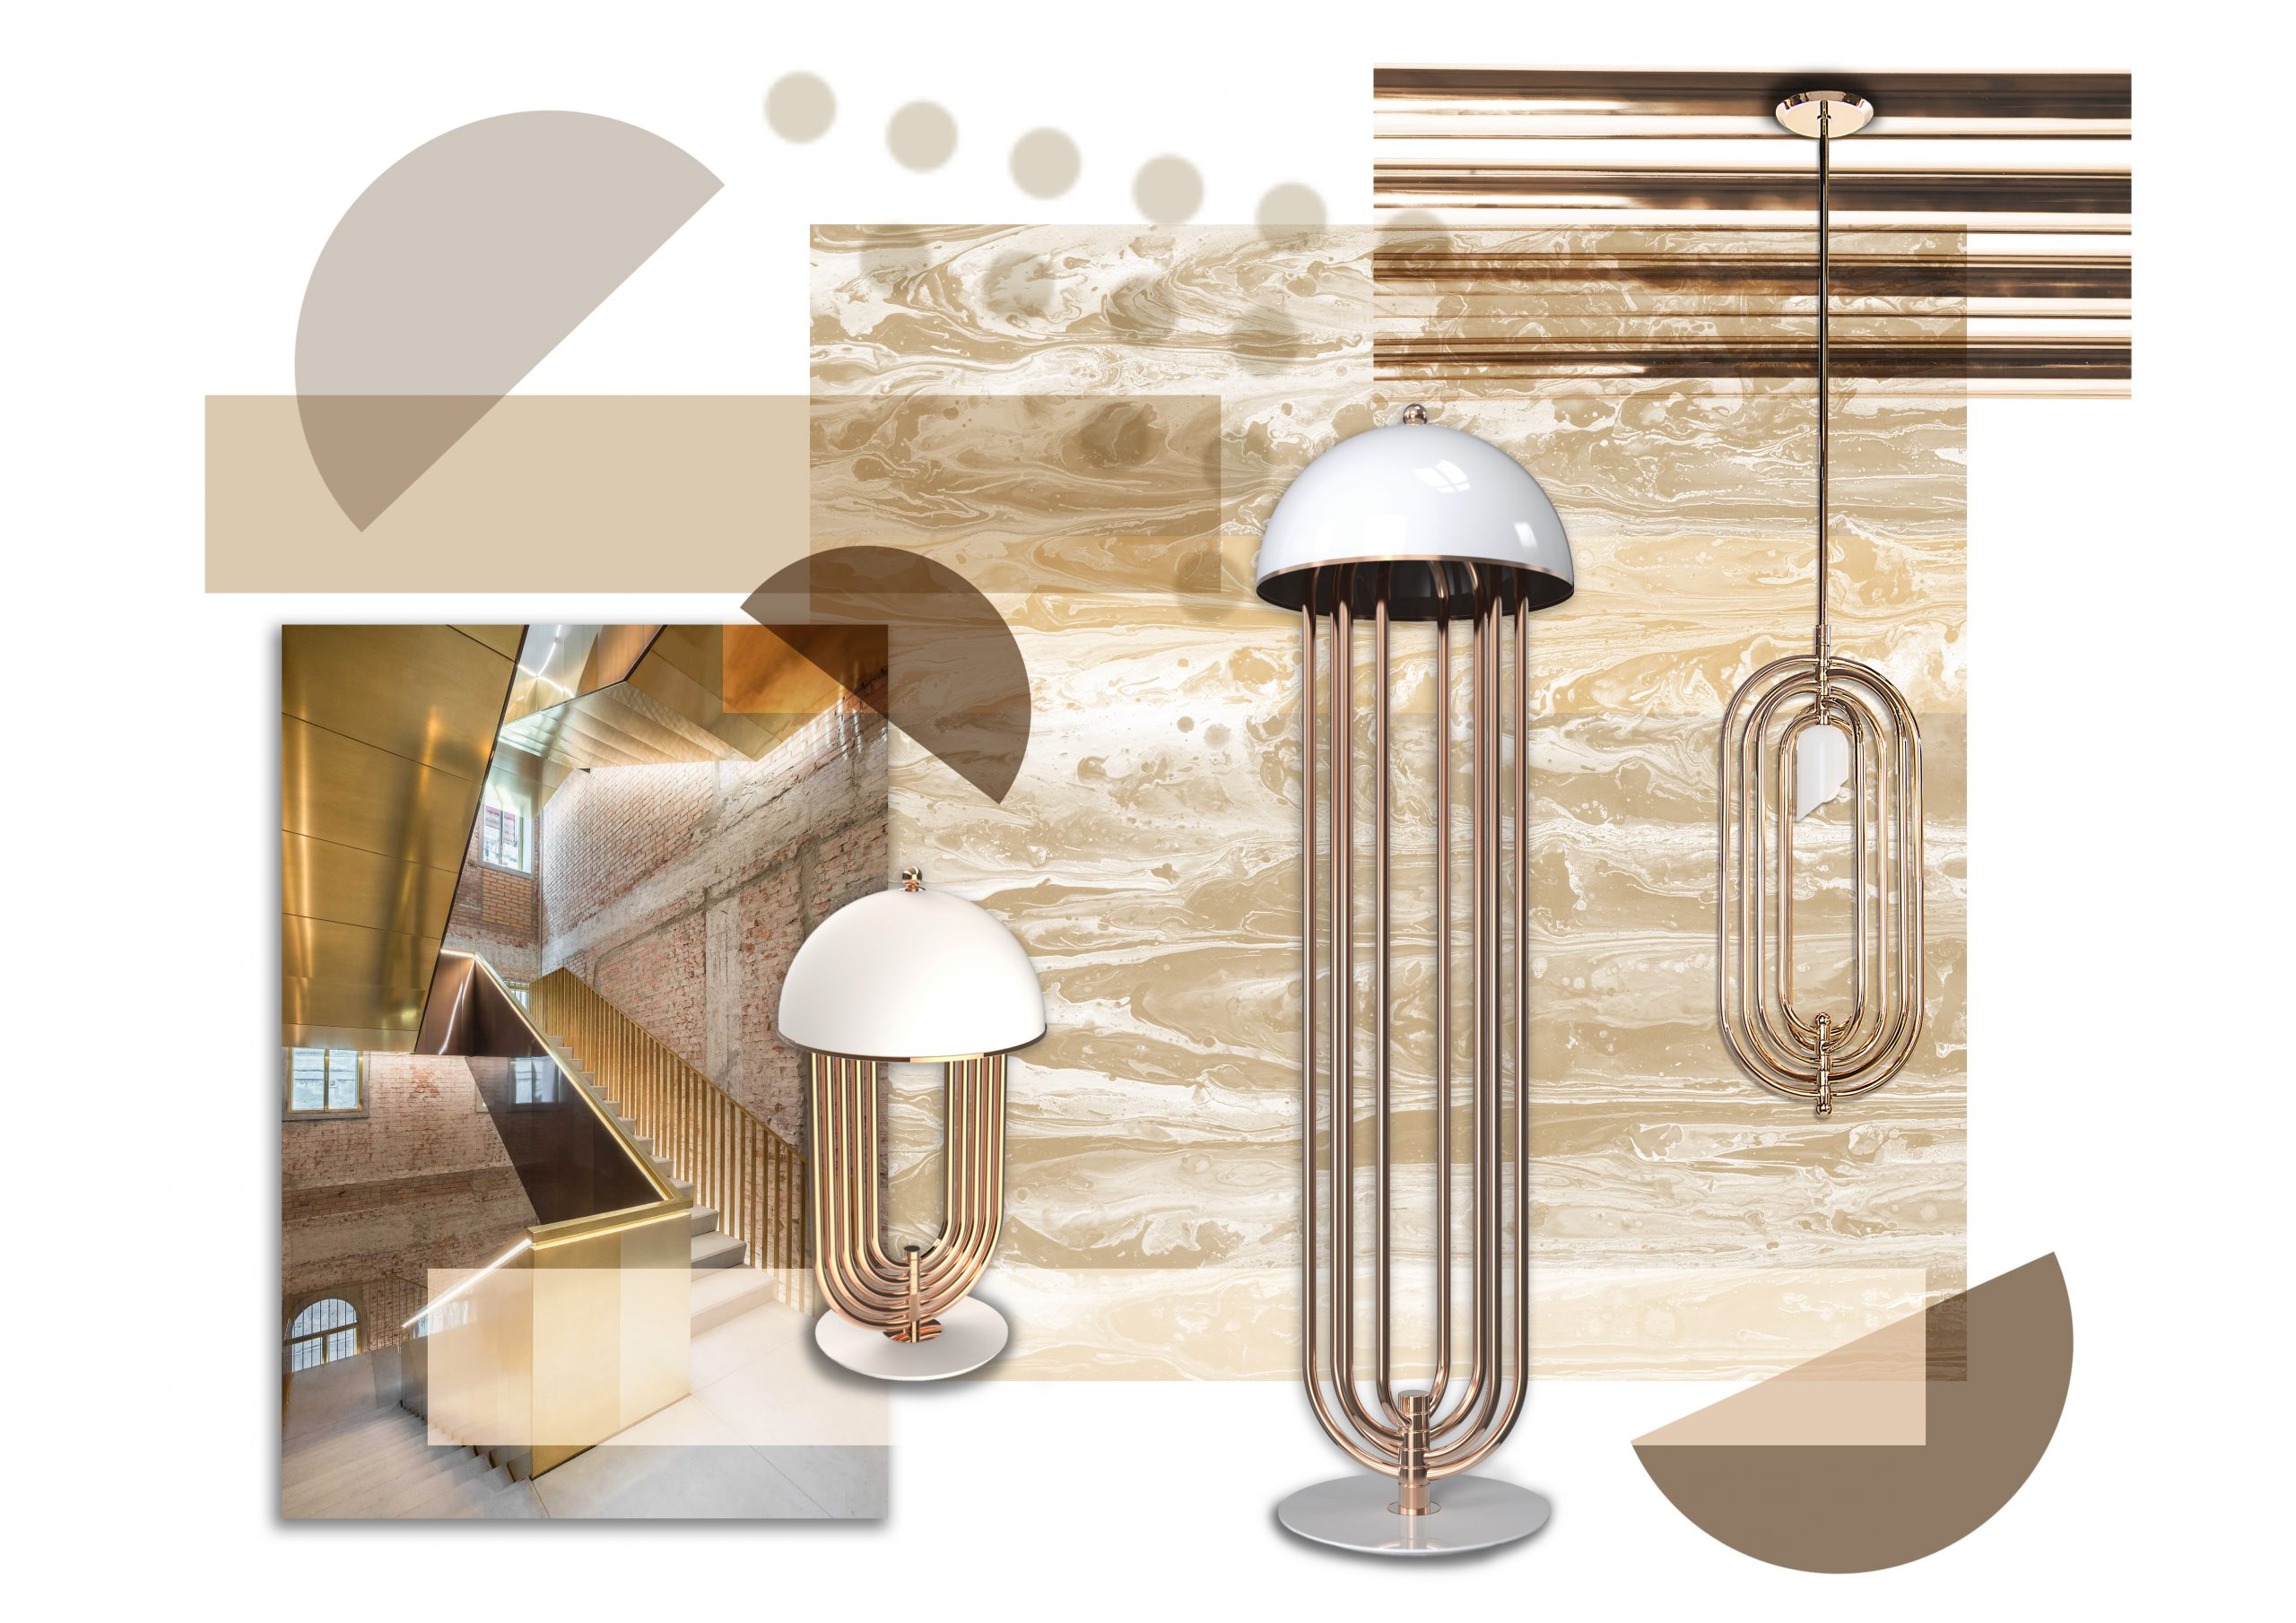 black history month black history month Celebrate Black History Month With These Unique Floor Lamps Ideas! Celebrate Black History Month With These Unique Floor Lamps Ideas2 scaled